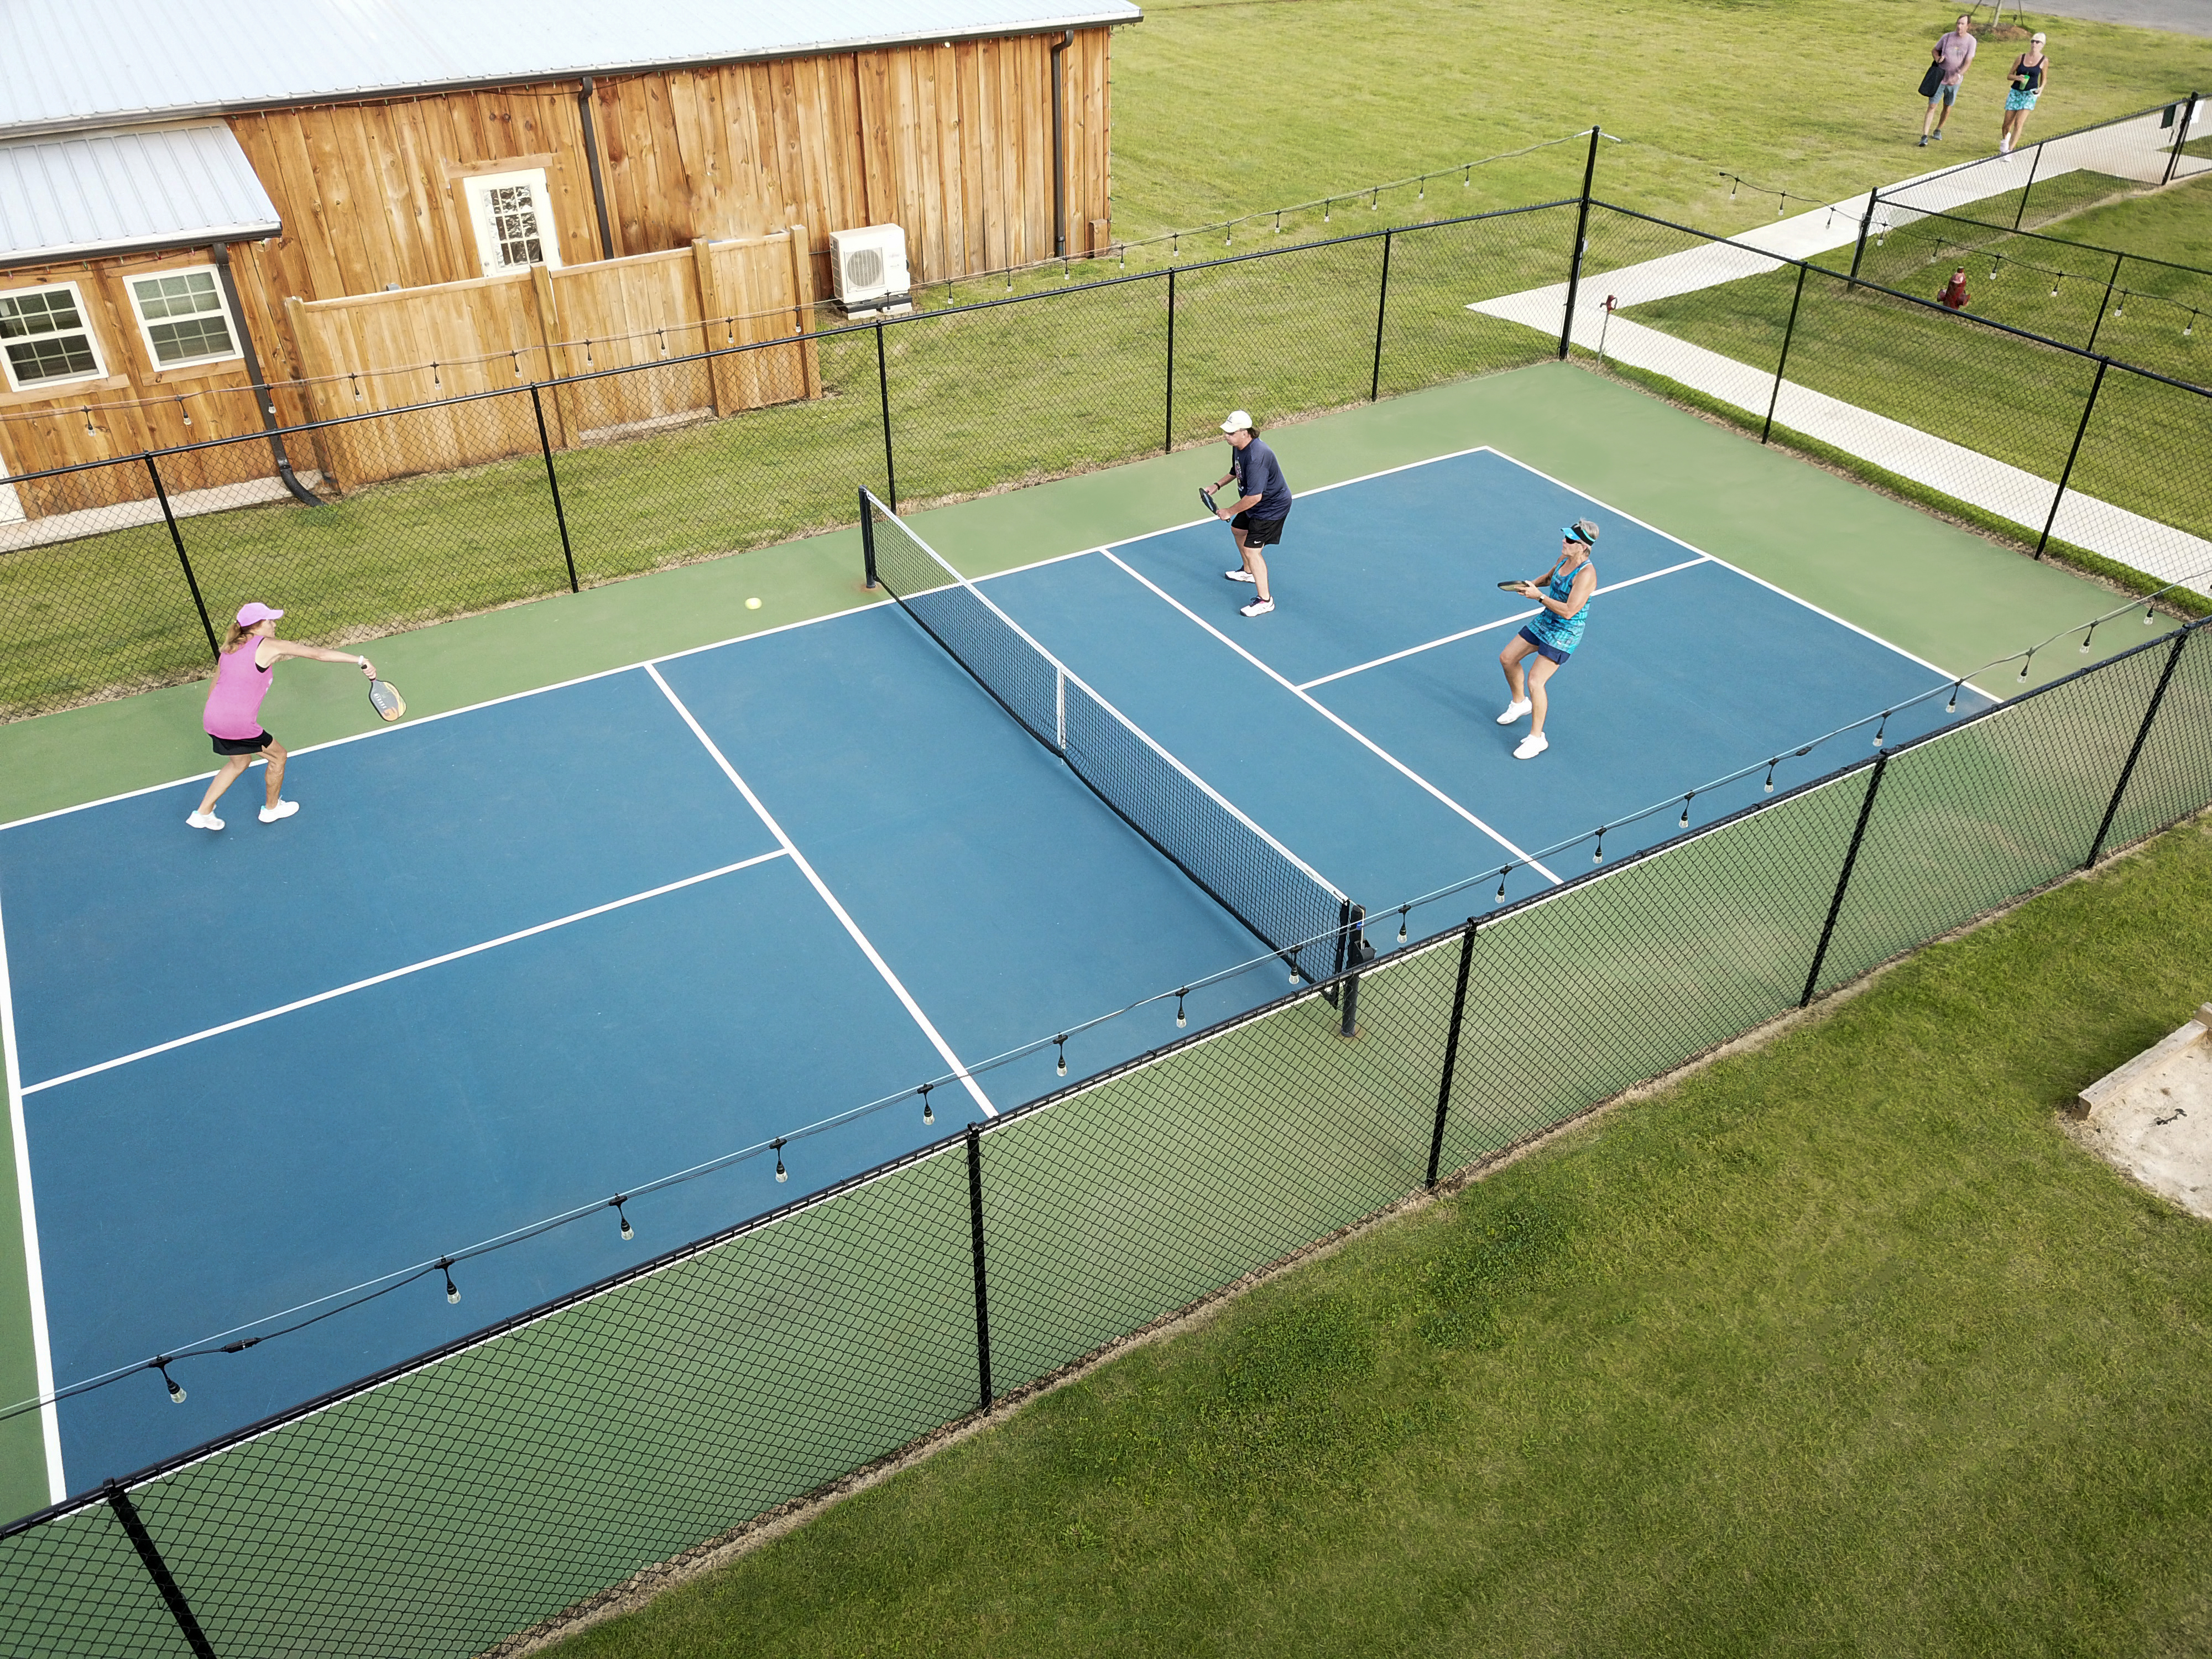 Pickle Ball: What Is It and How Do You Play?